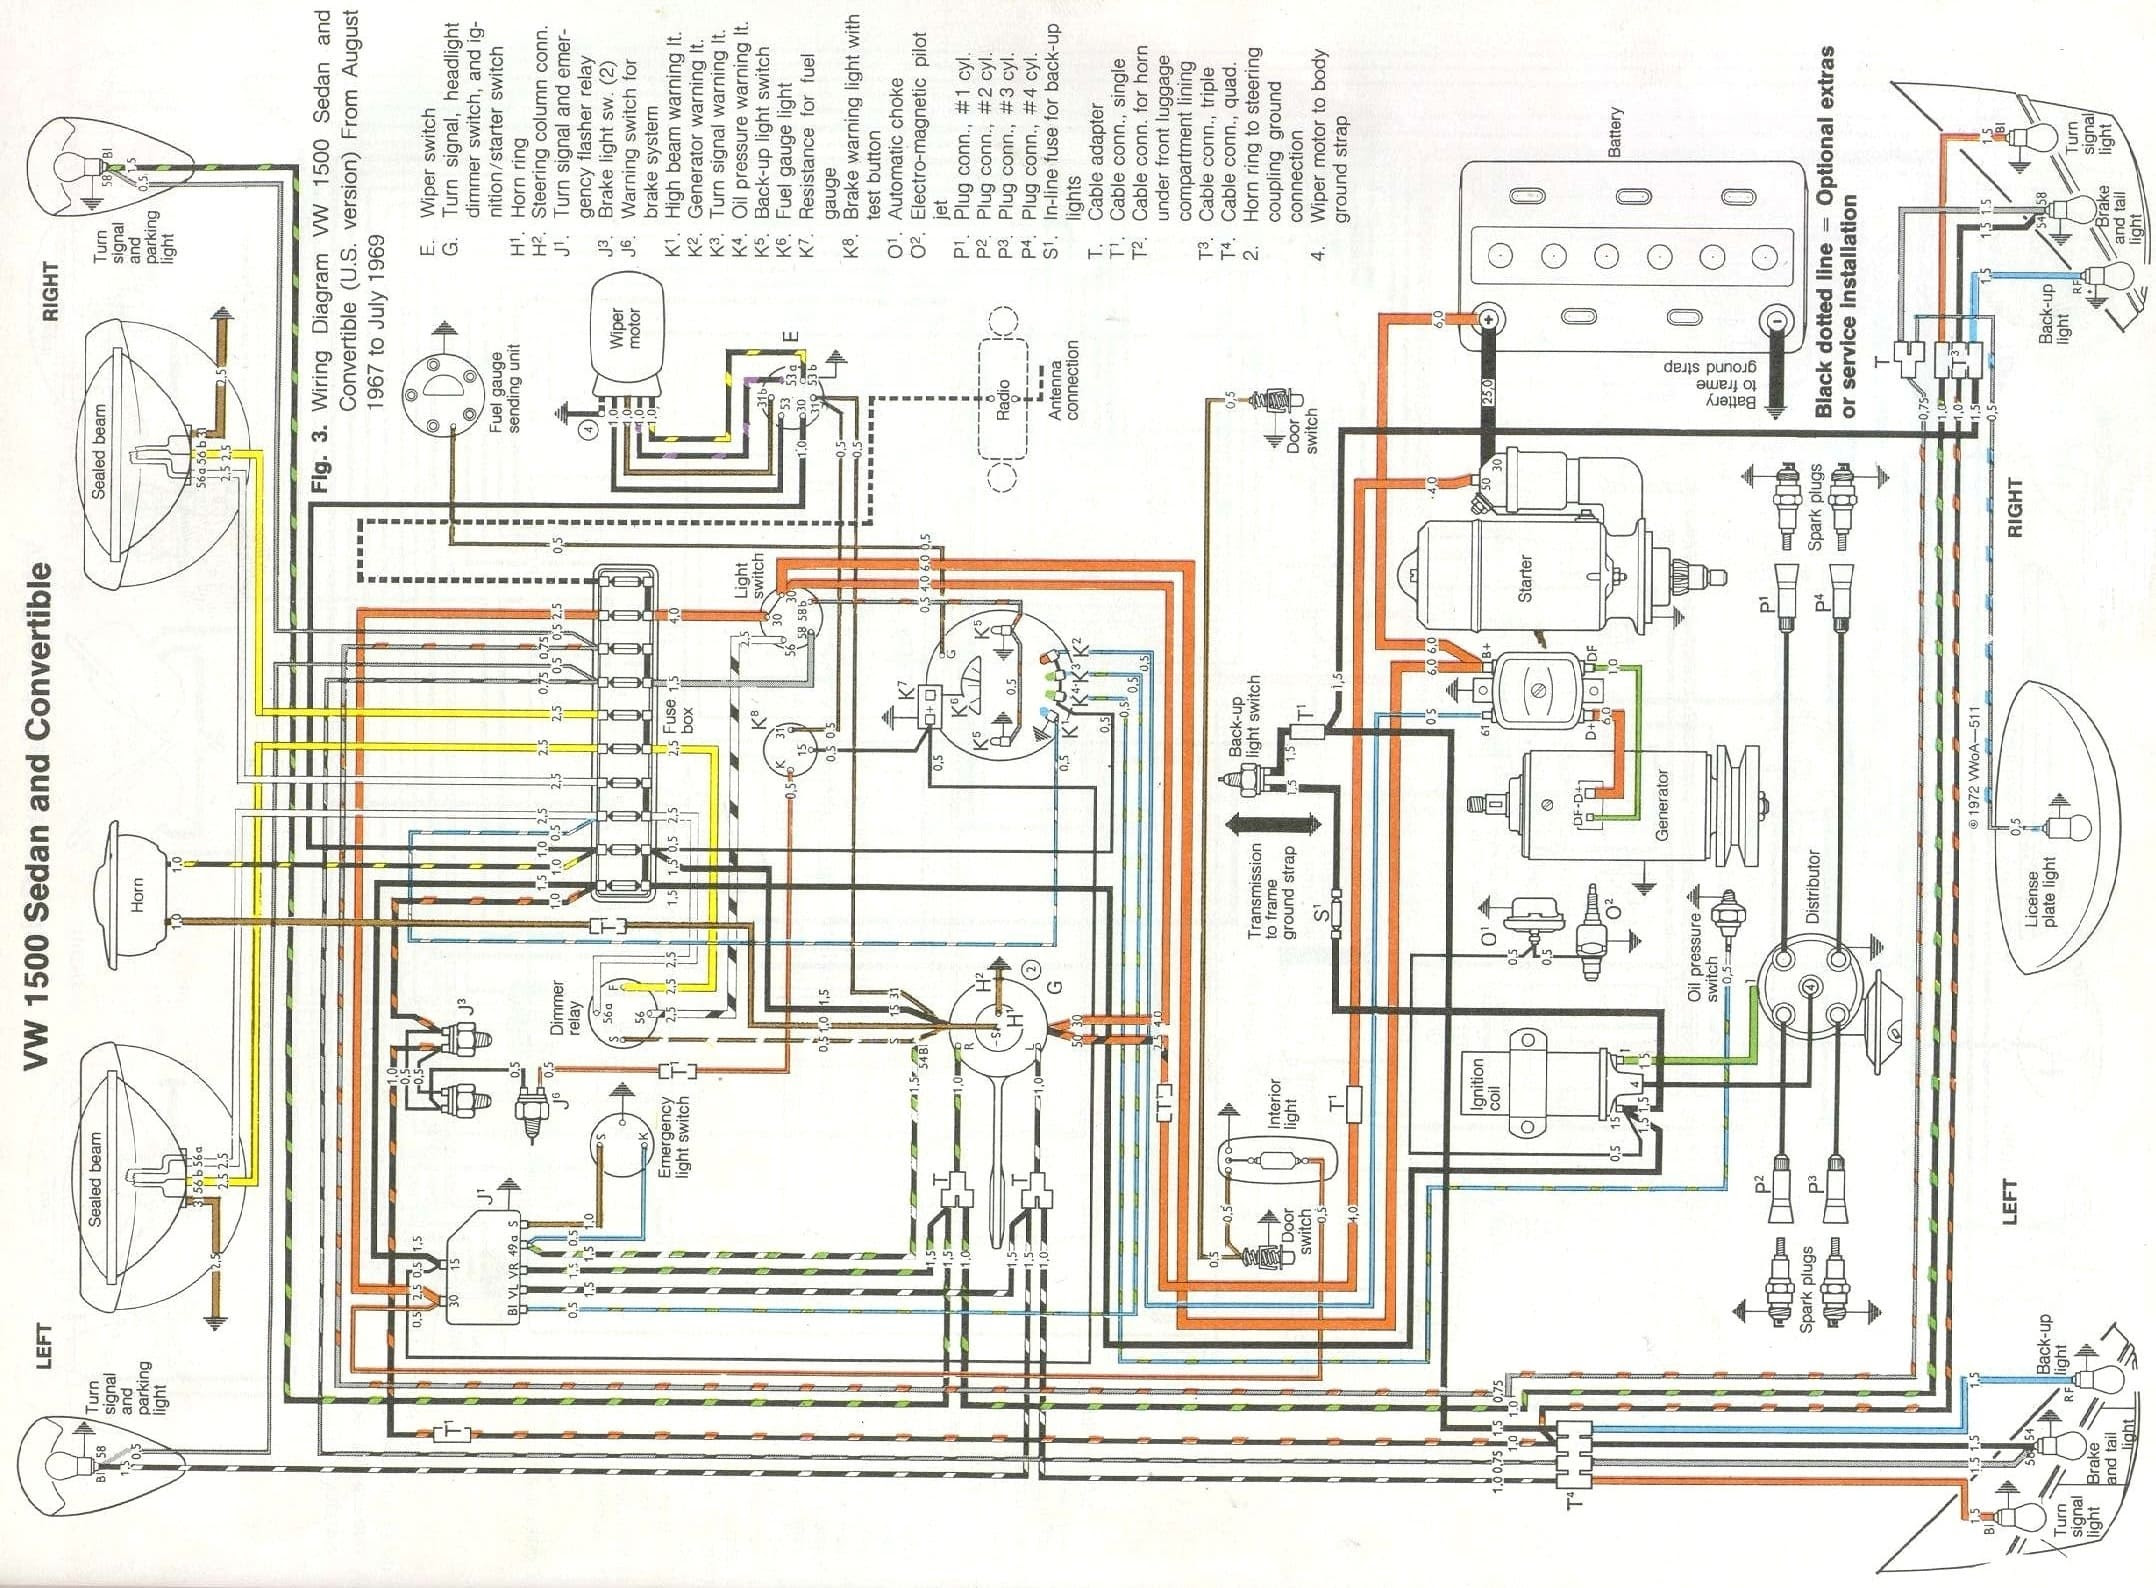 2006 Vw Beetle Wiring Diagram